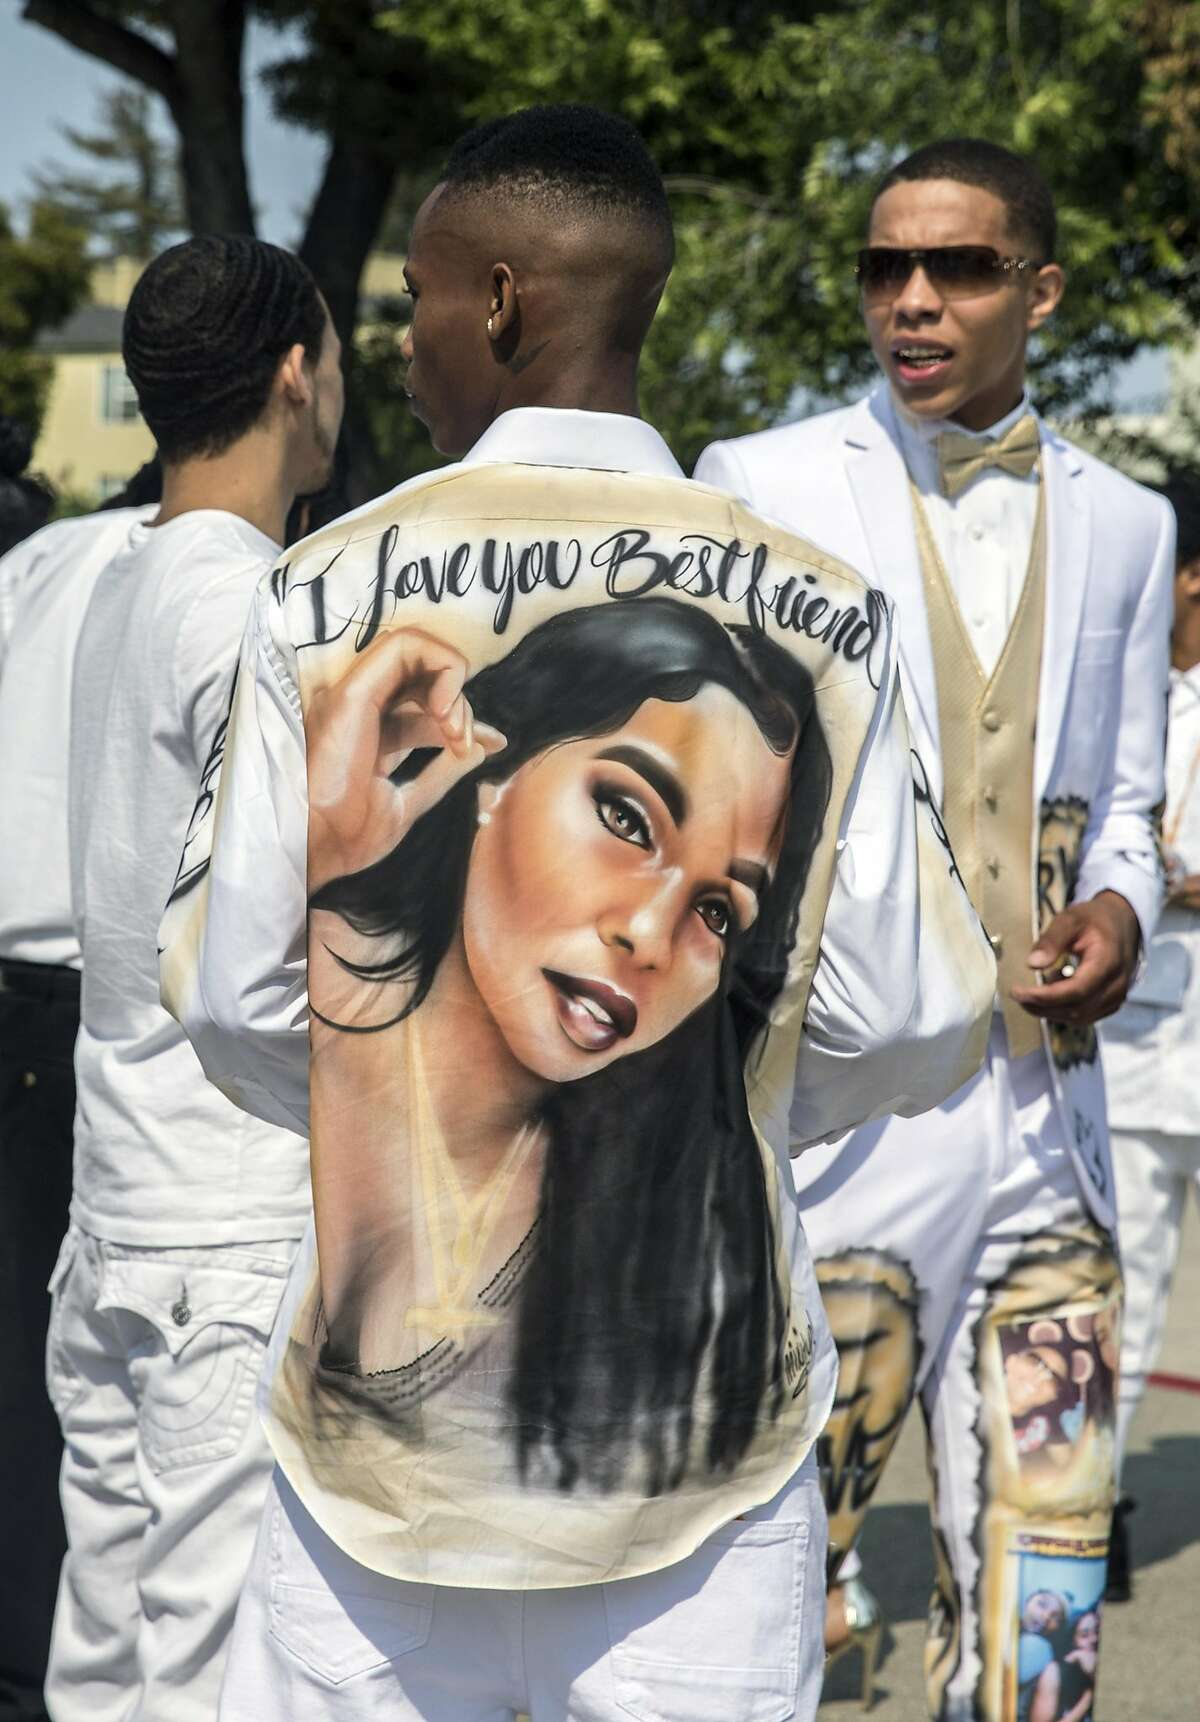 Duce, center, friend of Nia Wilson sports a custom-made suit during a funeral service held for 18-year-old Nia Wilson of Oakland at Acts Full Gospel Church in Oakland, Calif. Friday, Aug. 3, 2018. Wilson was killed Sunday, July 22, 2018 at Macarthur Bart station in Oakland, Calif.